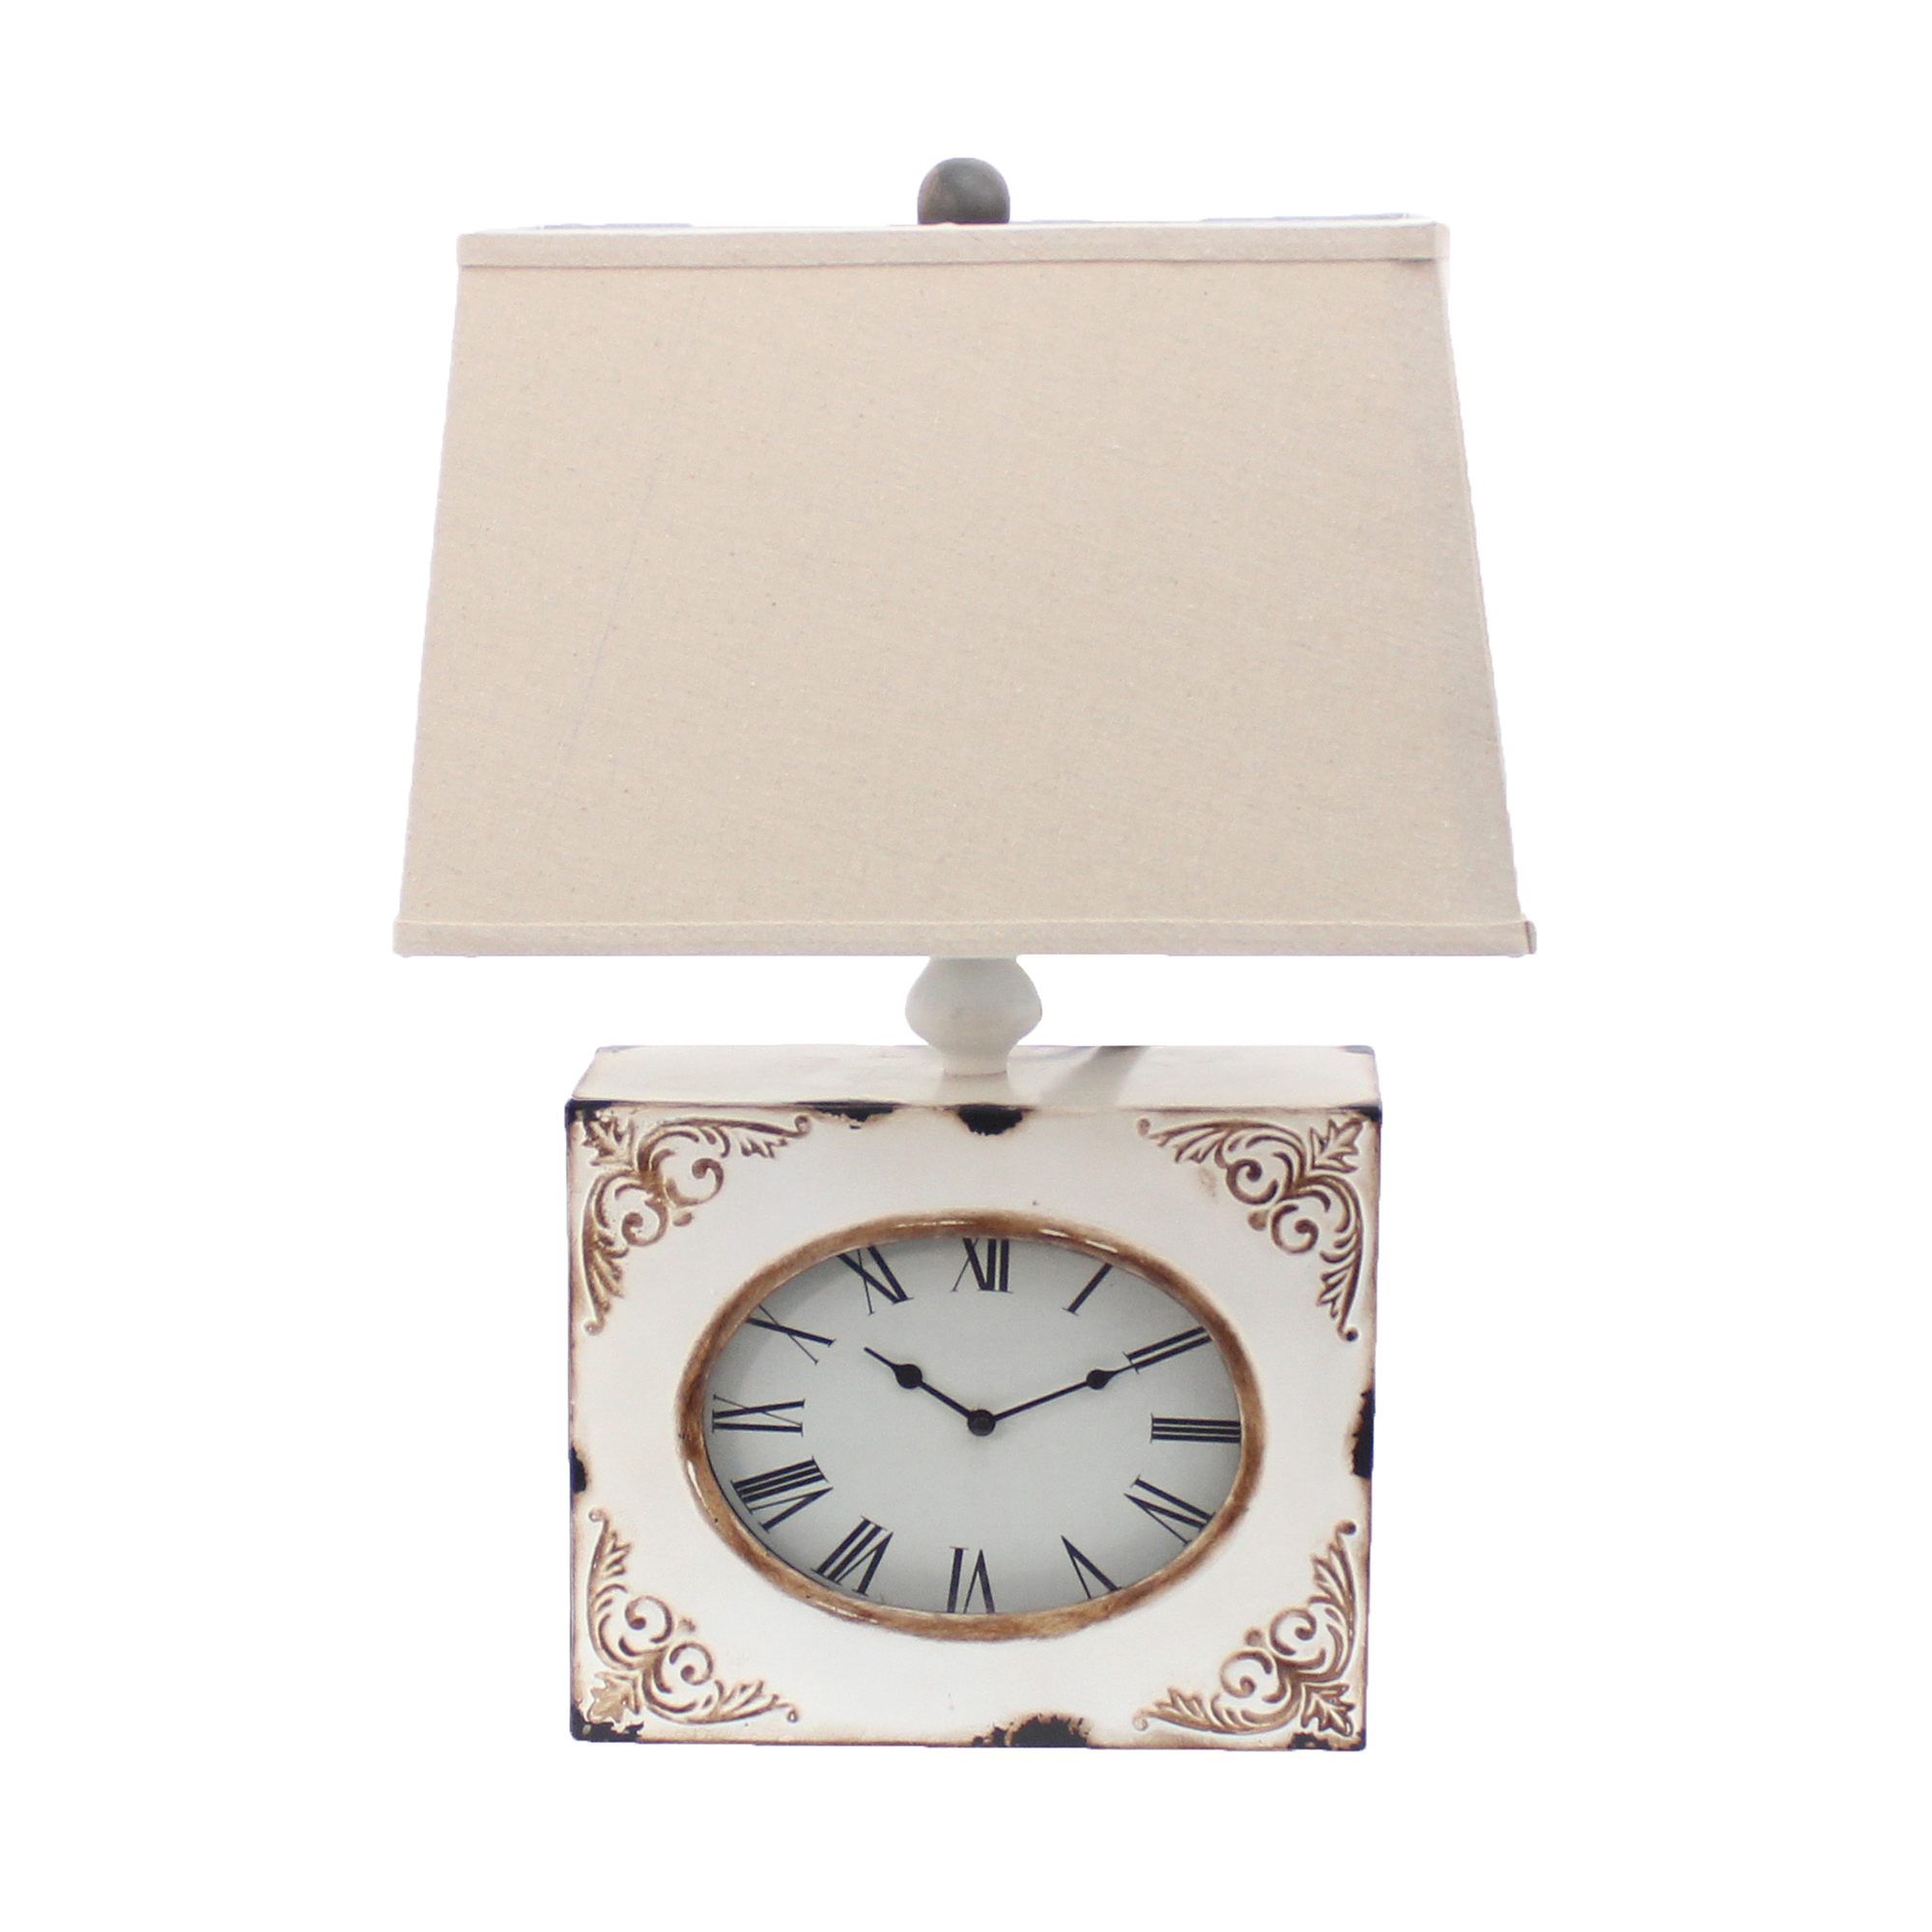 """22"""" X 22"""" X 7"""" White Vintage Table Lamp With Metal Clock Base"""